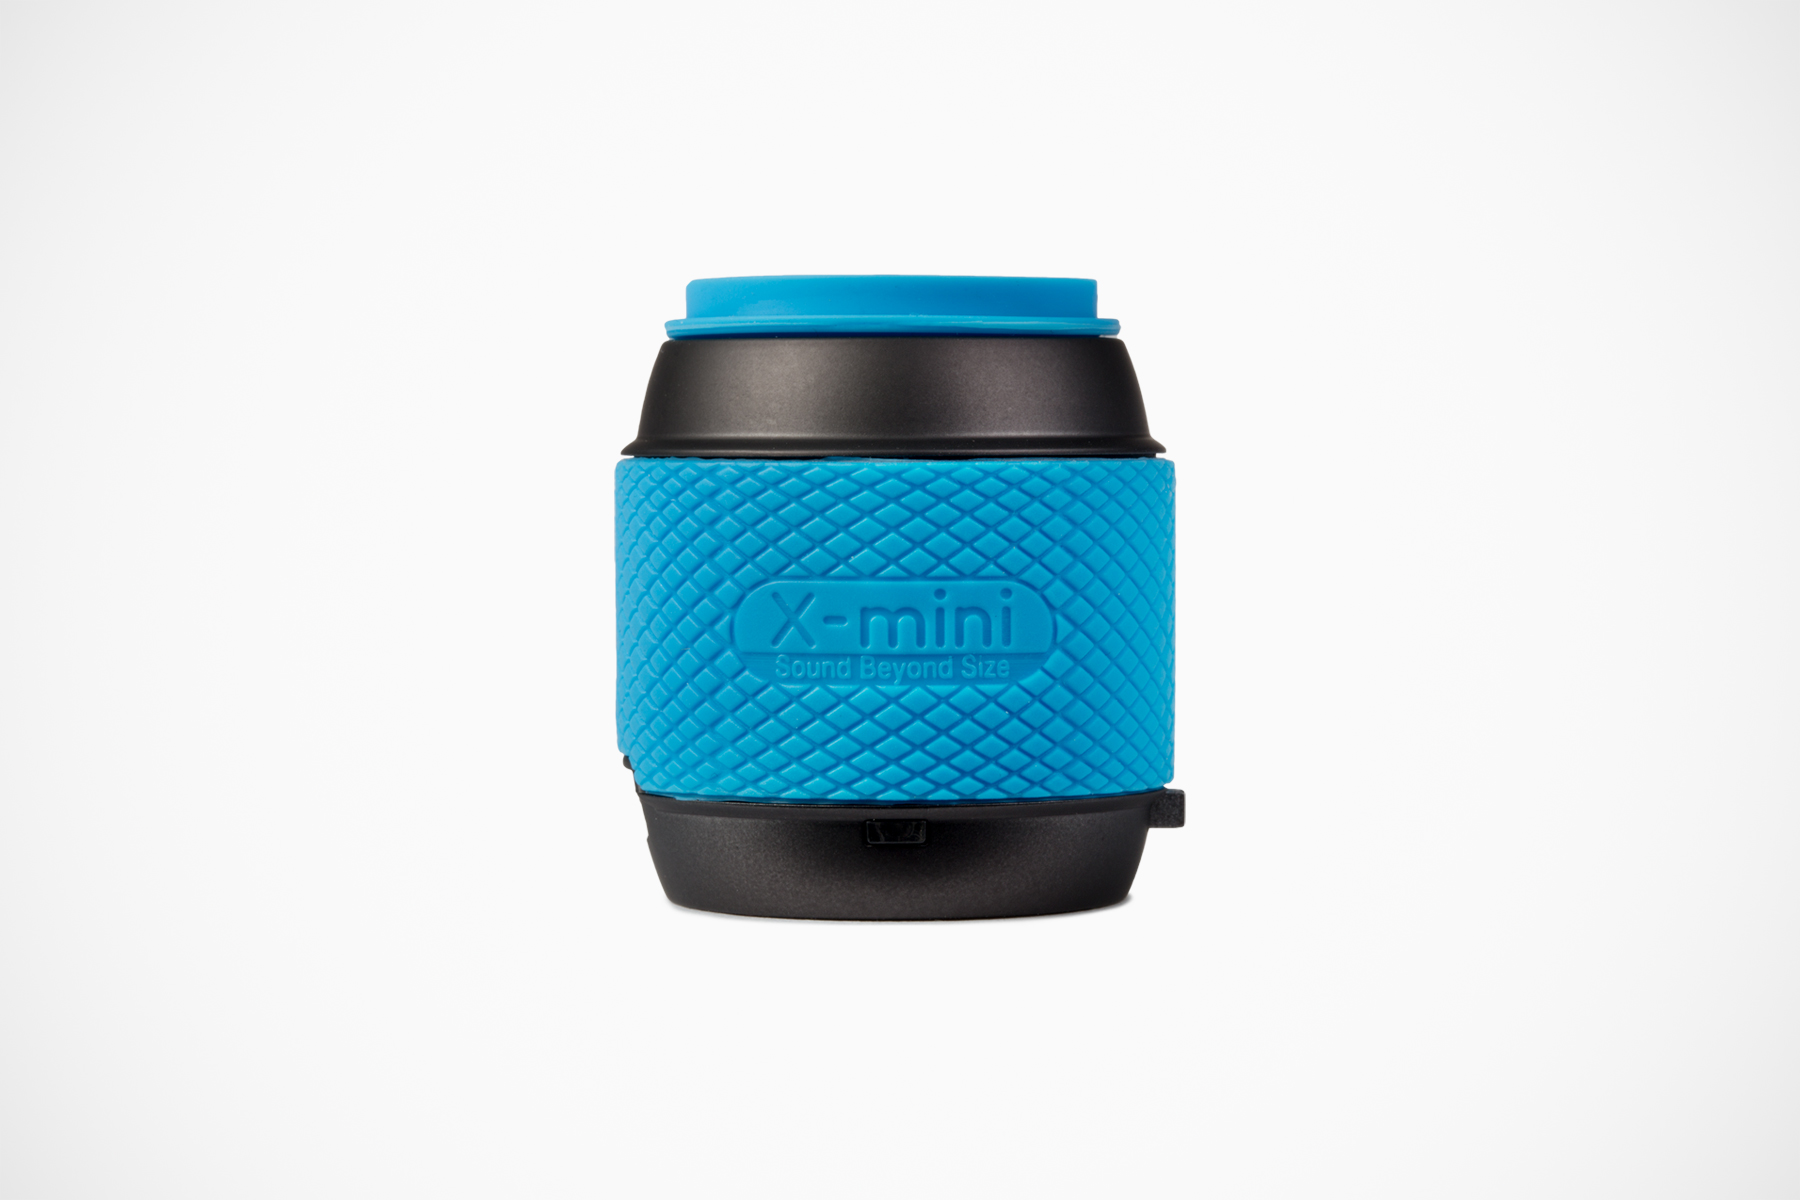 x mini 2014 spring summer thumbsize speakers